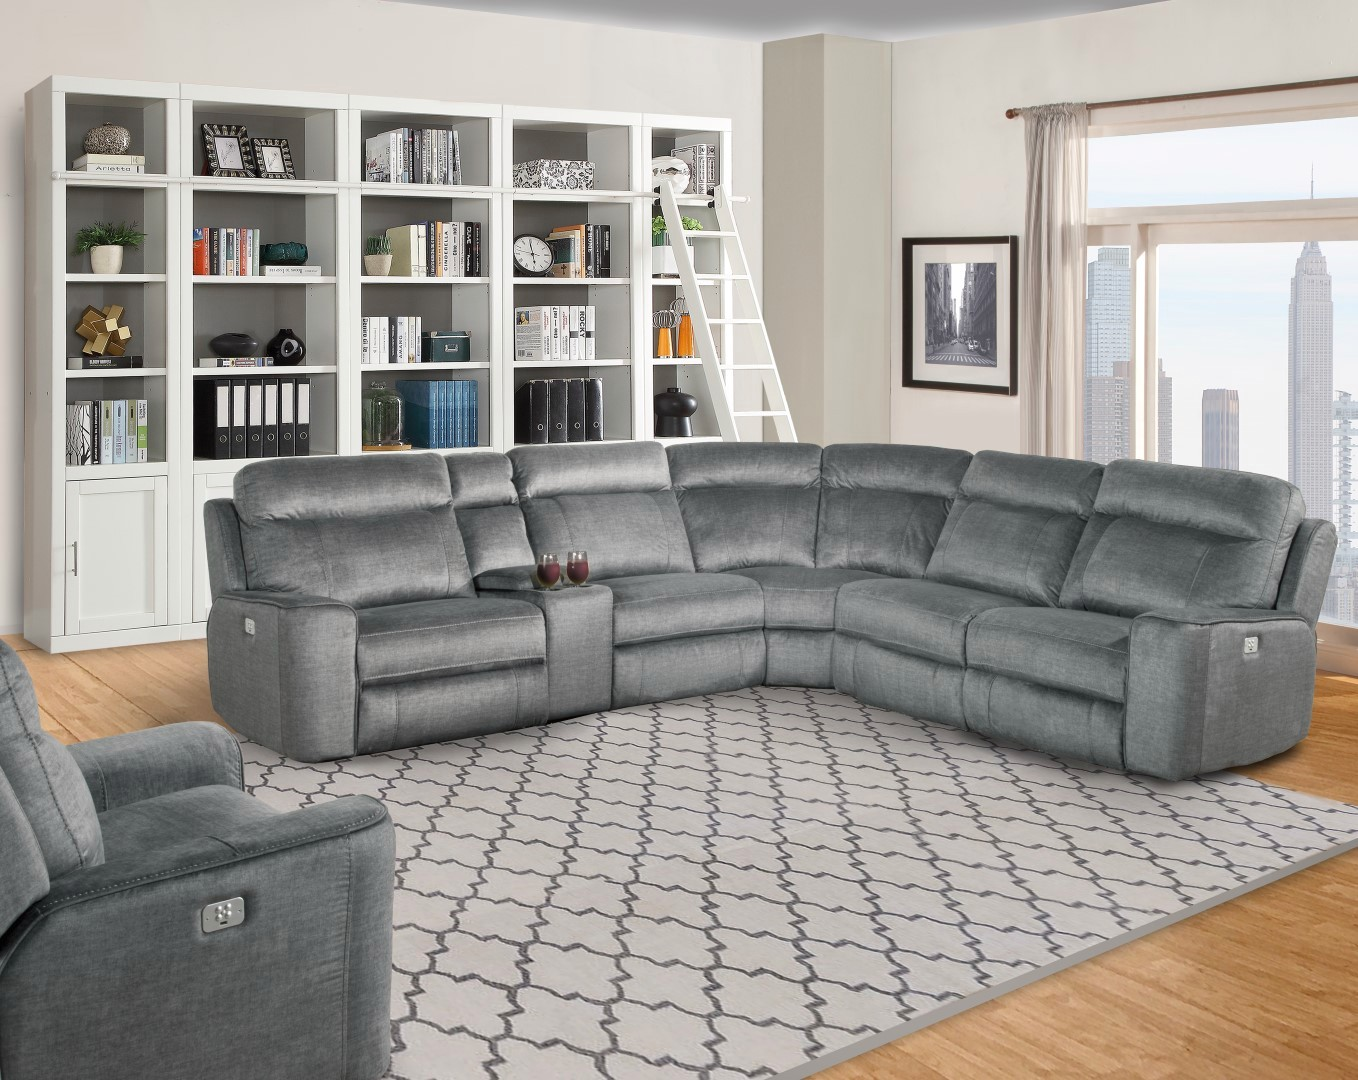 Details About Parthenon Titanium Modular Motion Sectional Sofa Power Headrest Armless Recliner